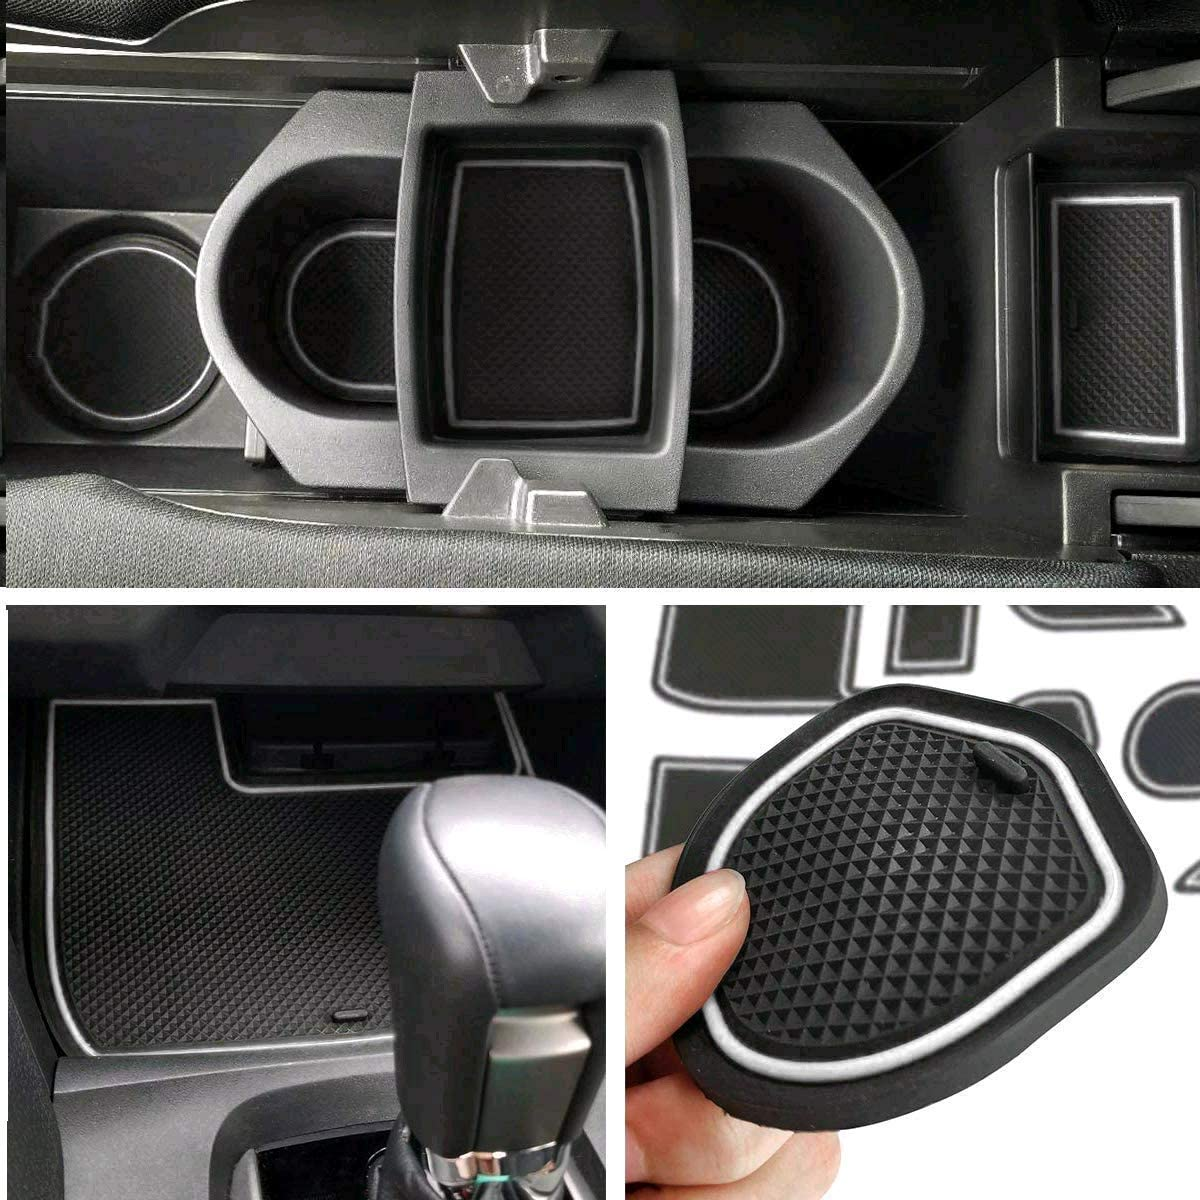 Auovo Anti-dust Door Mats Inserts Cup Center Console Liner Accessories Fit for Honda Civic Sedan 2016 2017 2018 2019 2020 21pcs//Set, White